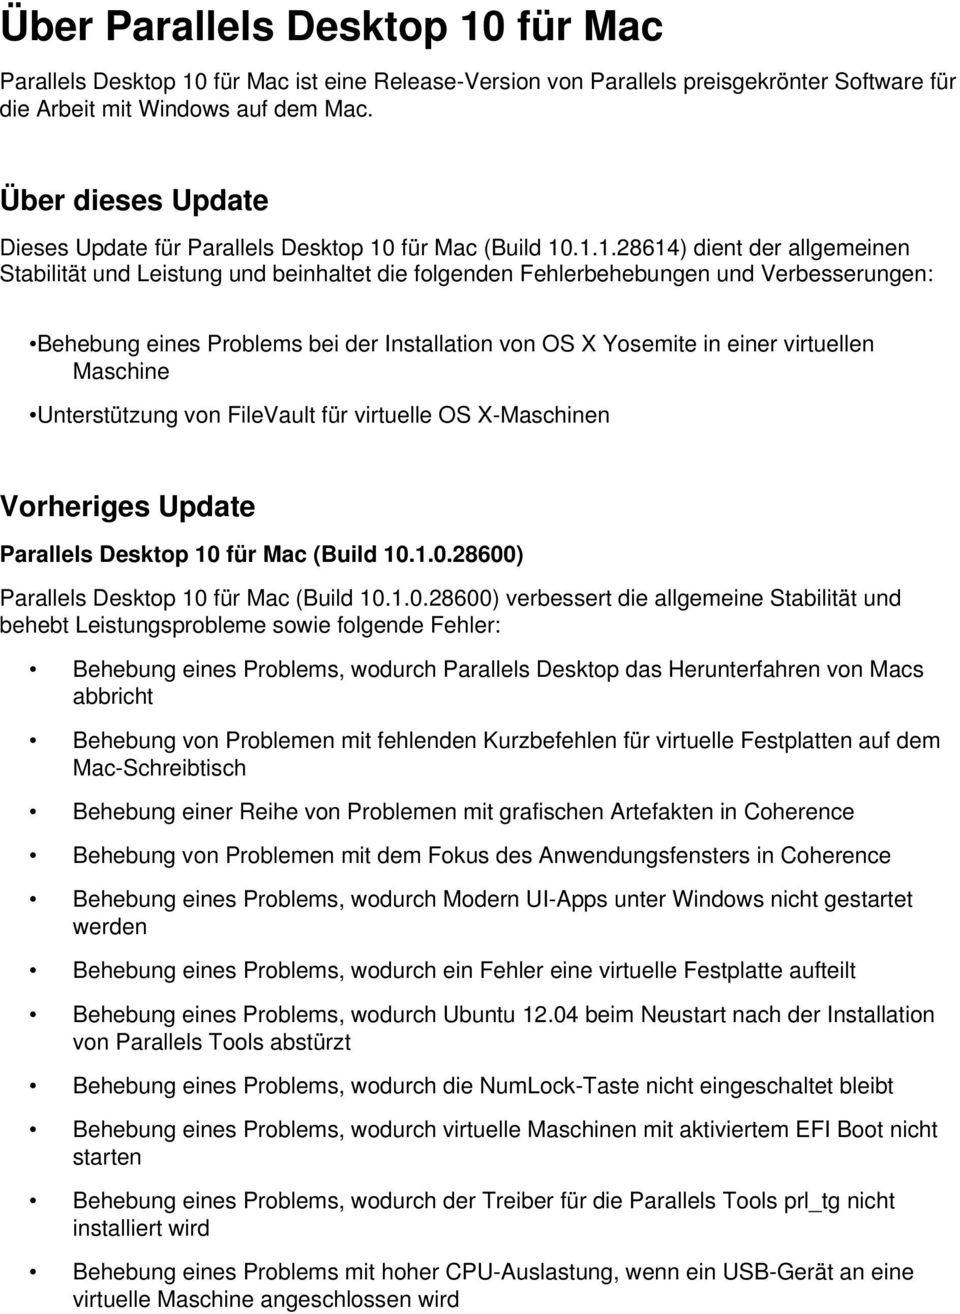 für Mac (Build 10